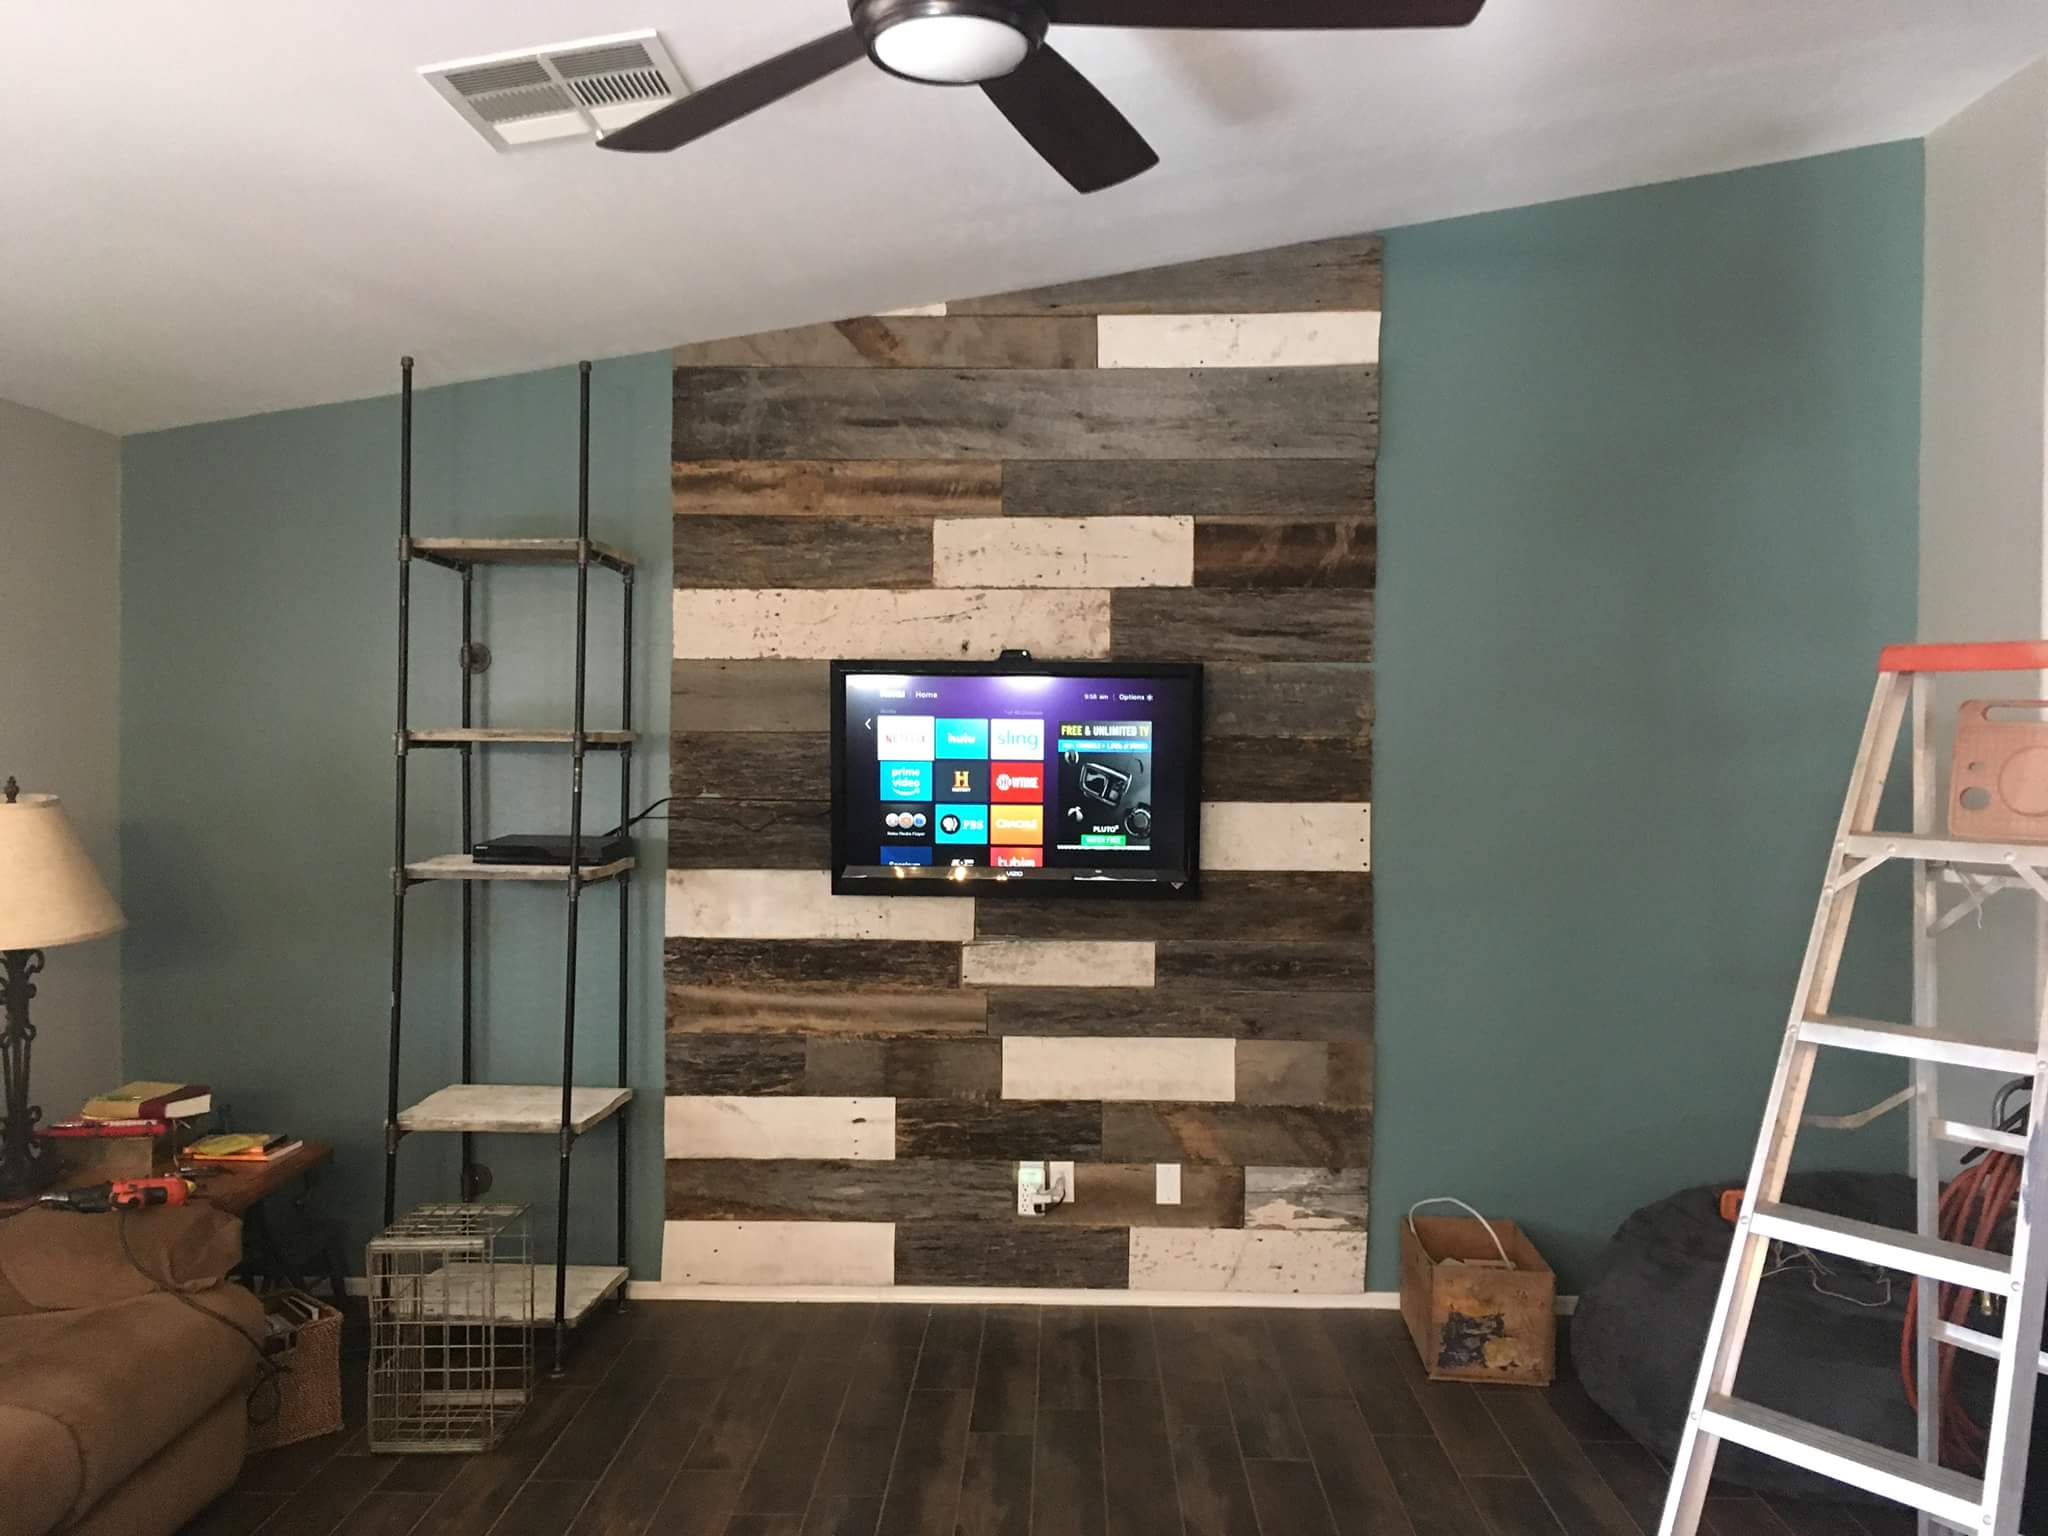 Used barn wood wall cover to spice up the living room